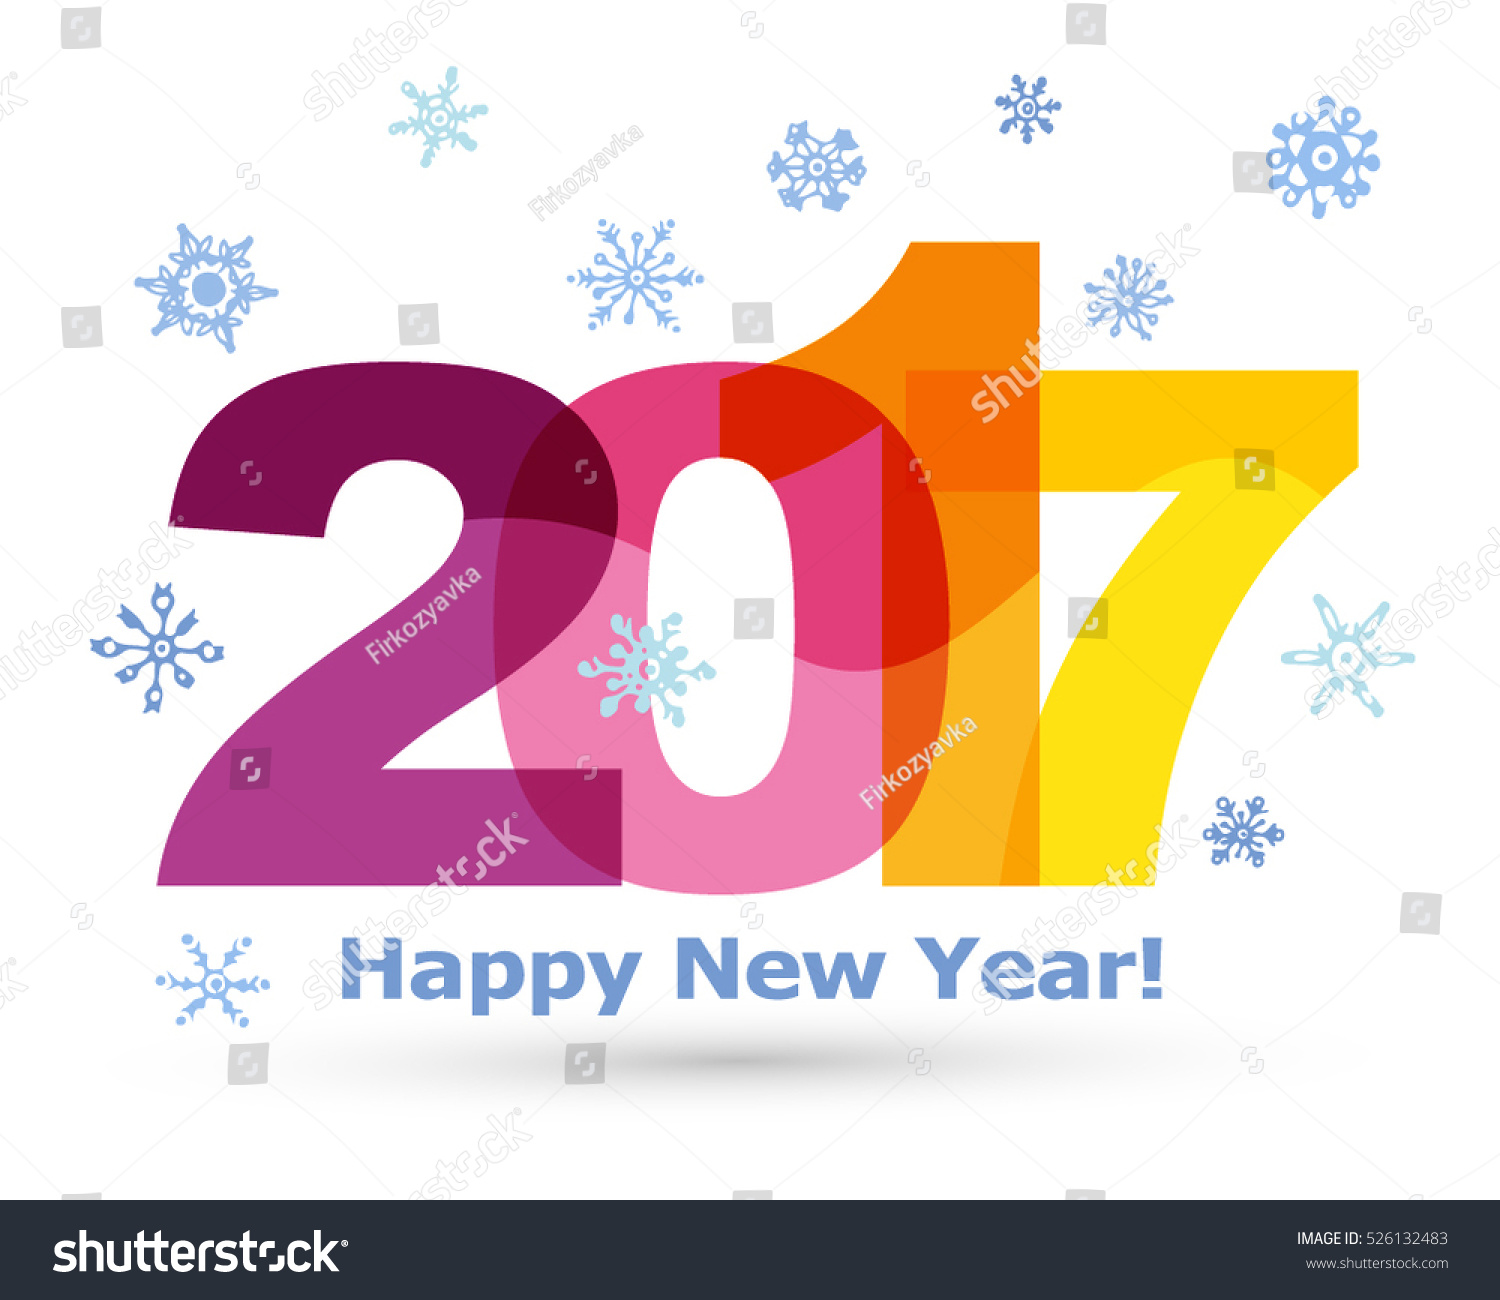 ... with ink. Vector illustration. Happy new year 2017 Text Design vector